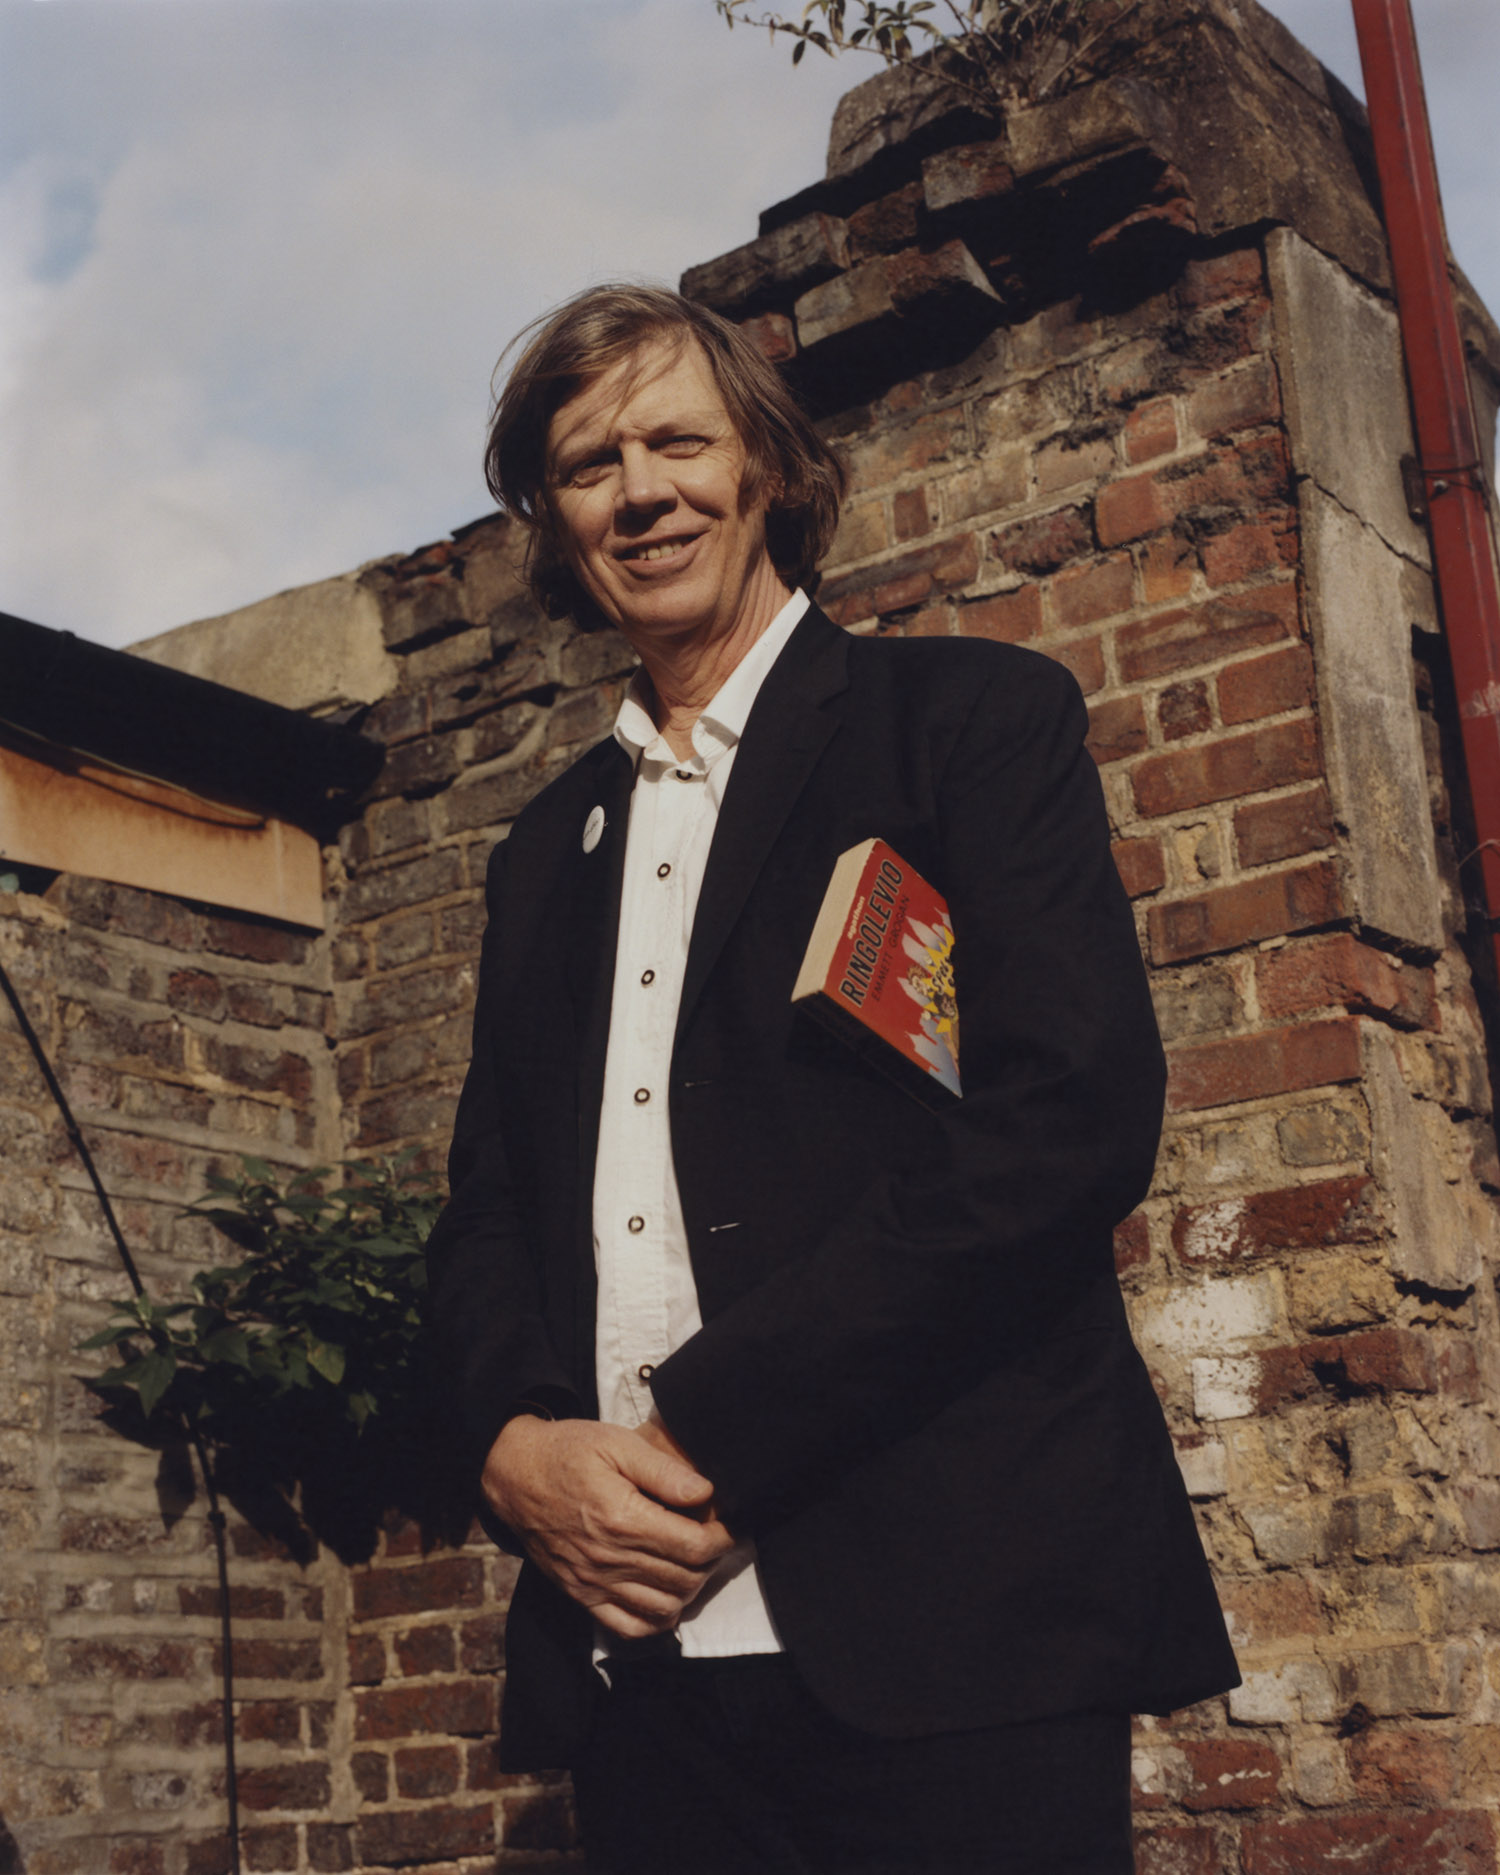 Thurston Moore on his new album, the old New York, and always resisting the mainstream